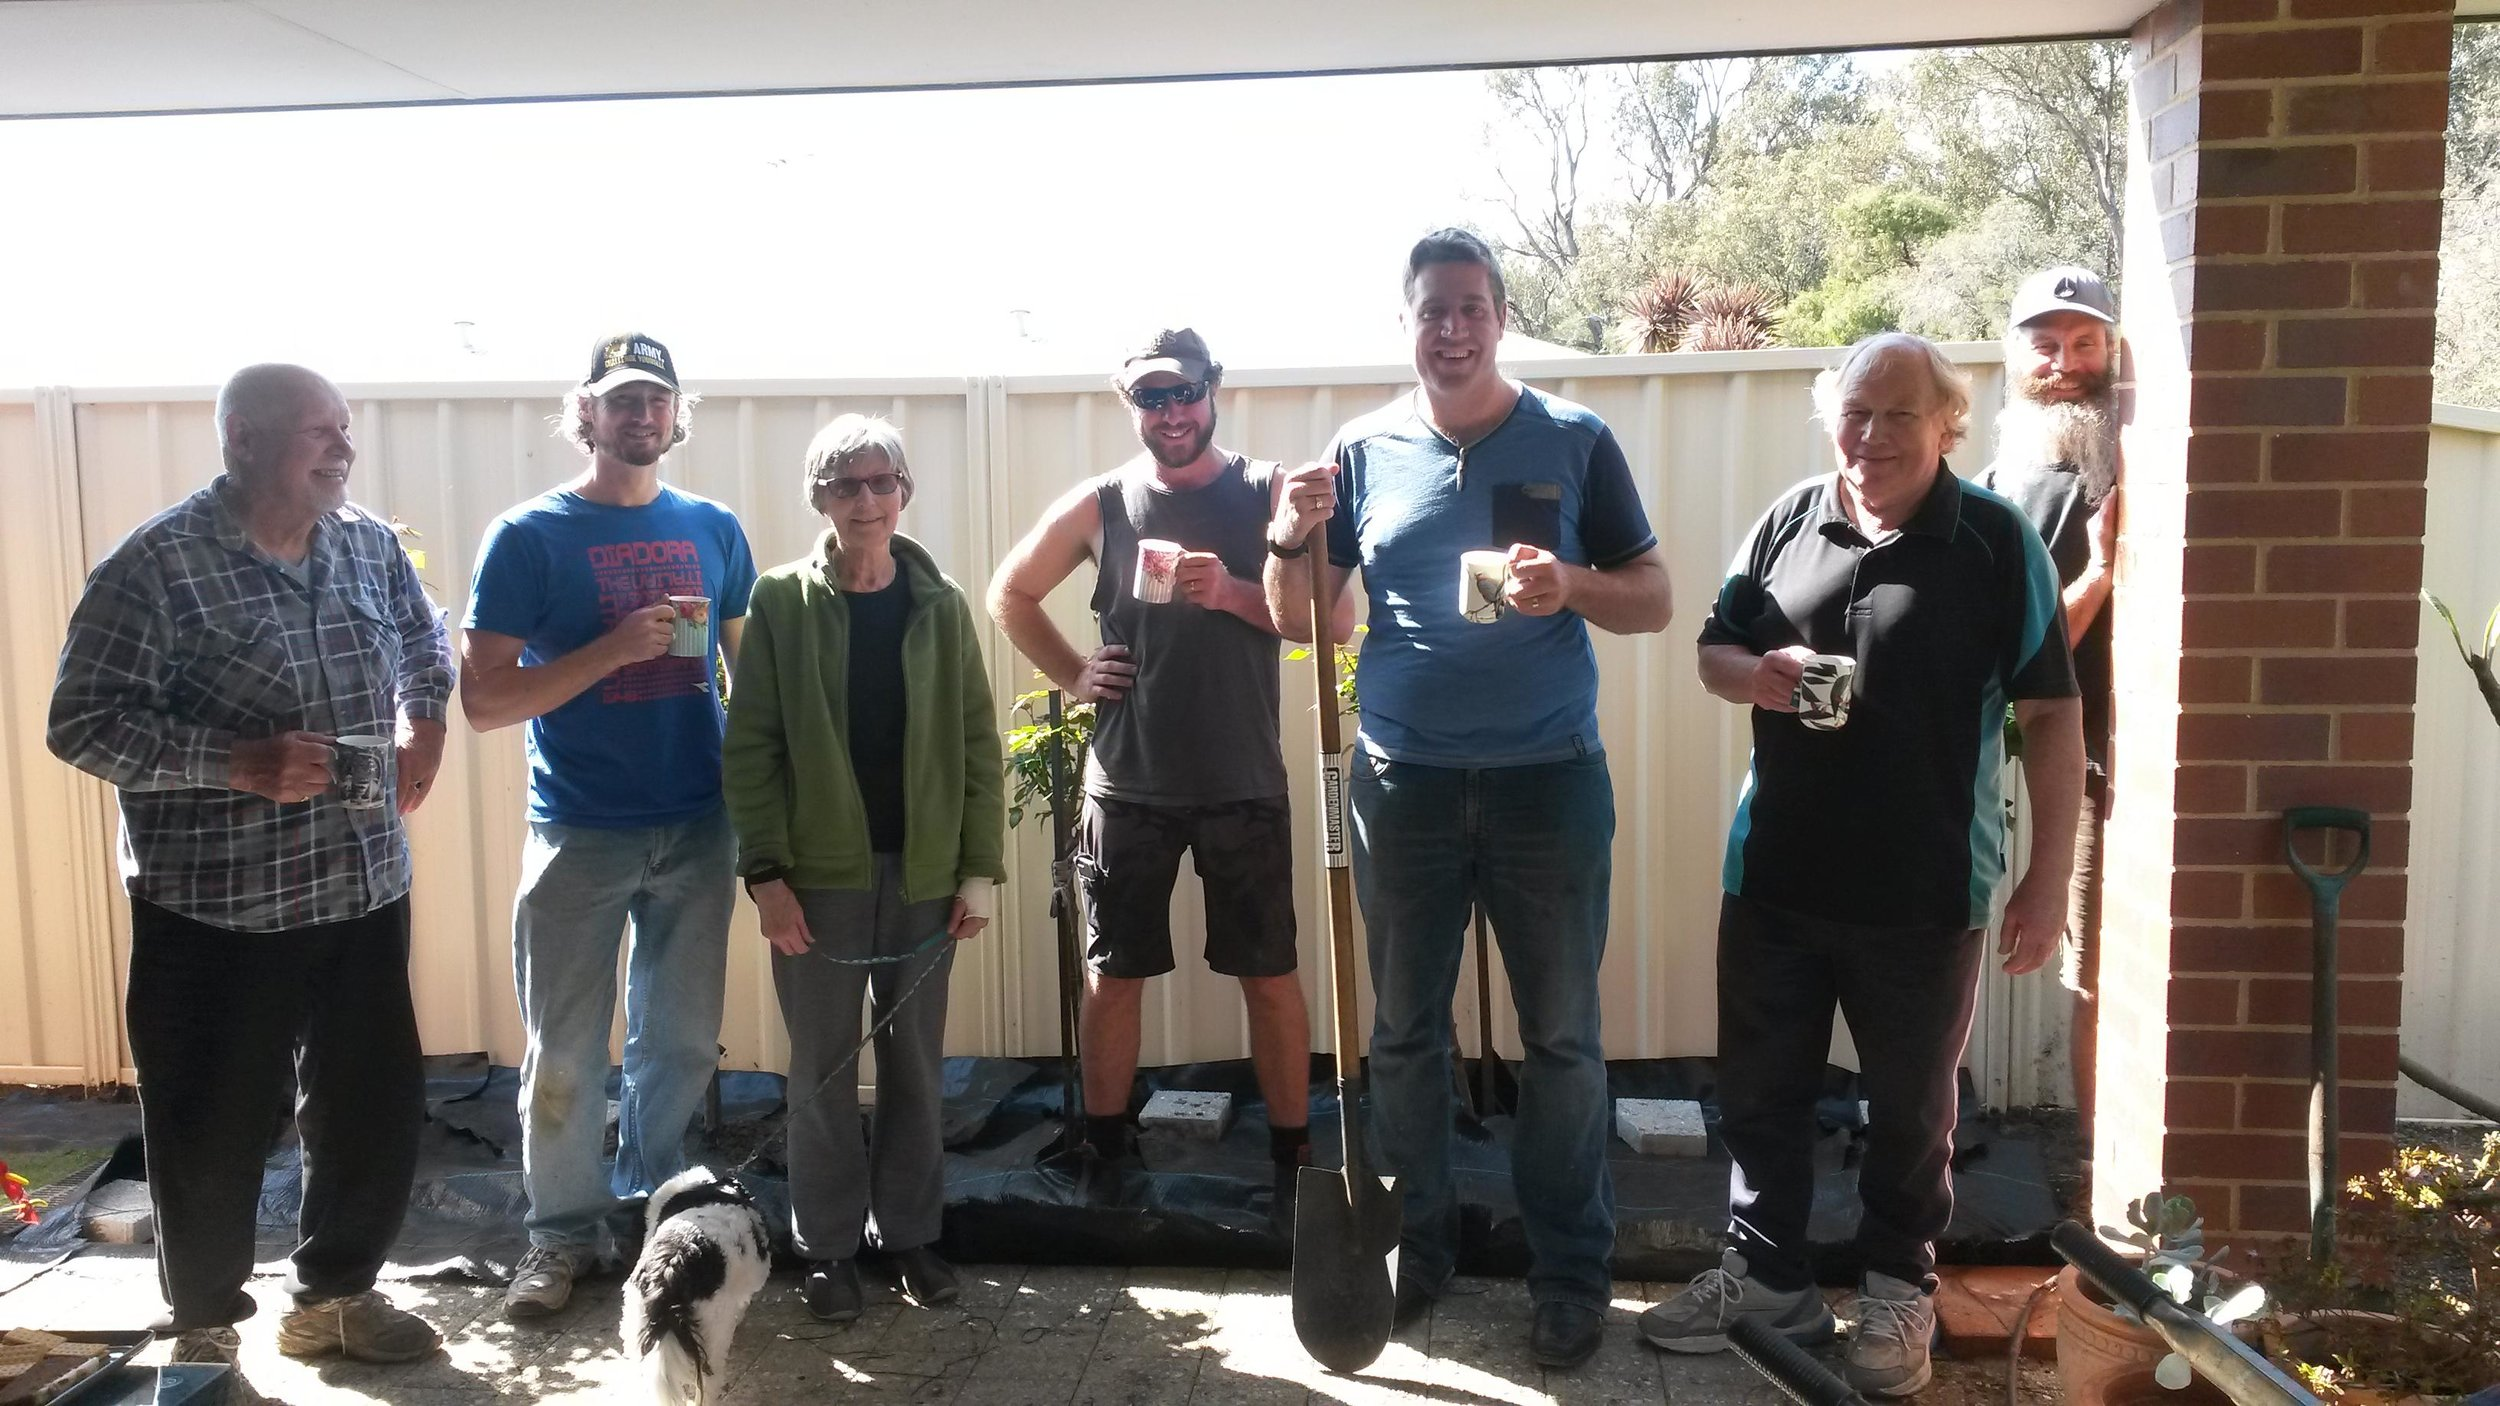 Mighty Men's Ministry - getting jobs done in people's home that are in need in our community.